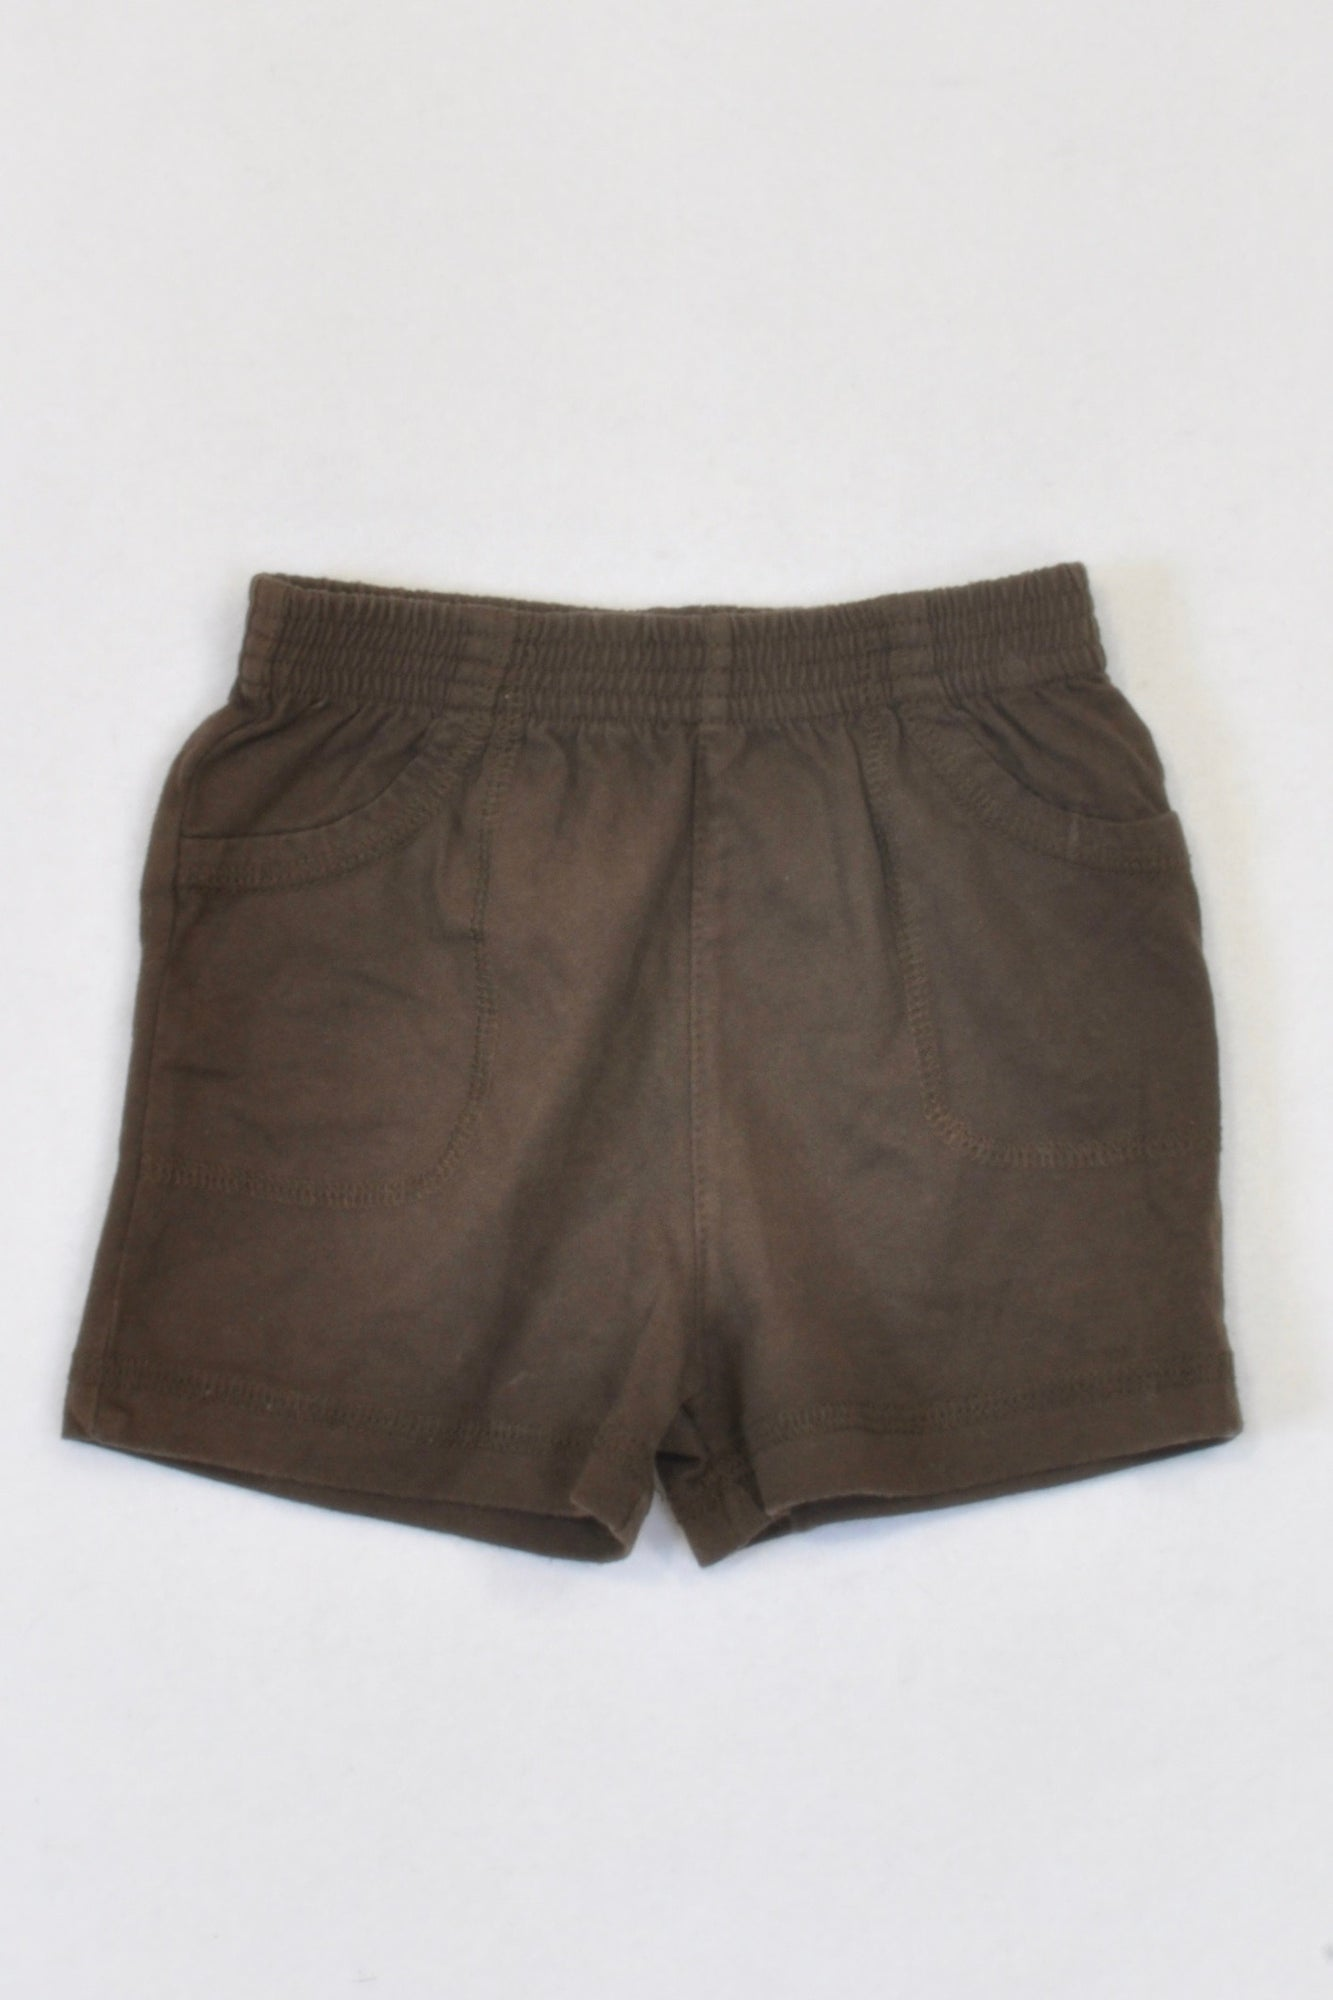 Okie-Dokie Basic Brown Play Shorts Boys 3-6 months